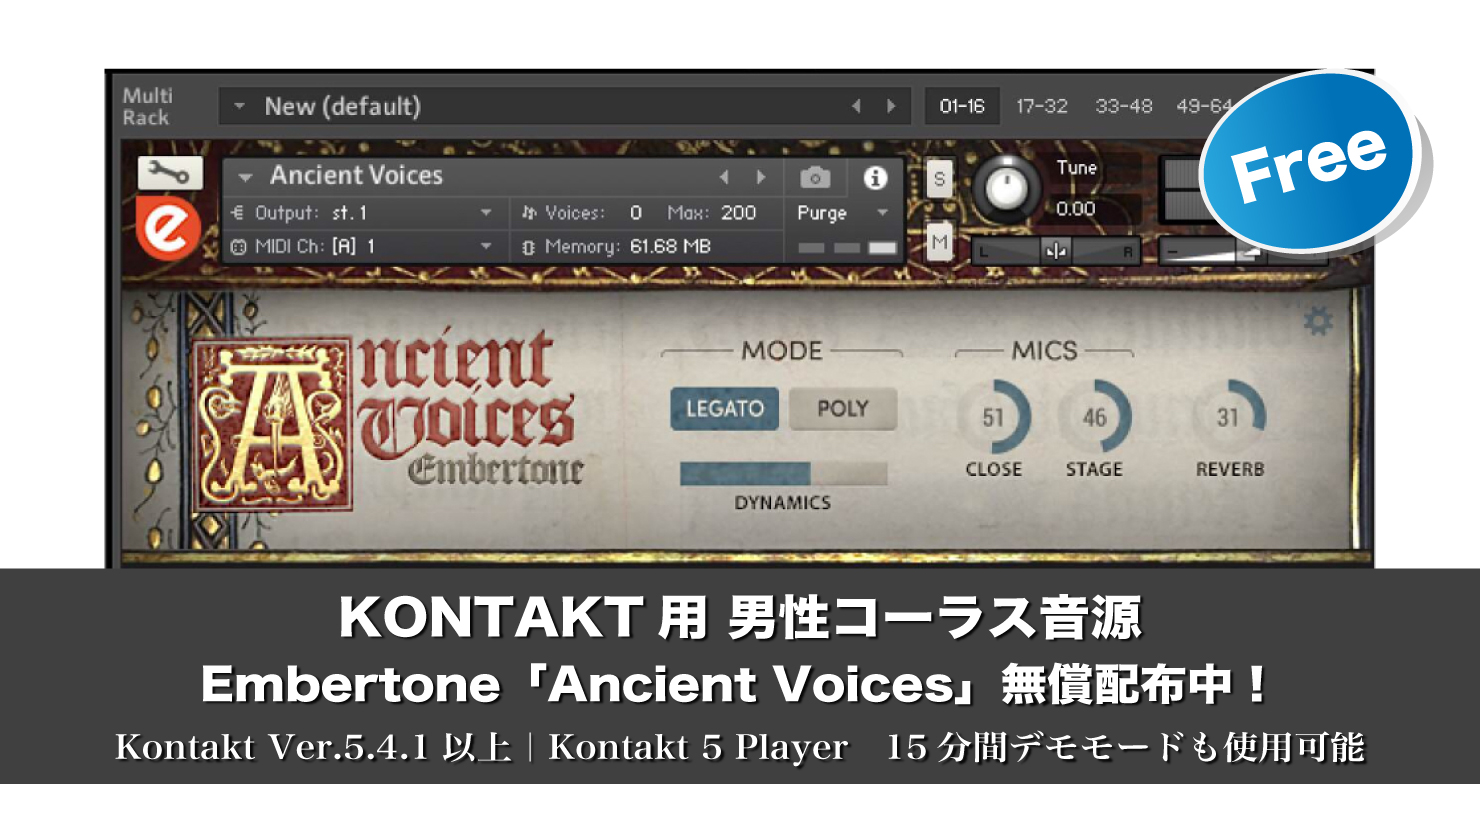 【無料】KONTAKT用 男性コーラス音源 Embertone「Ancient Voices」無償配布中!